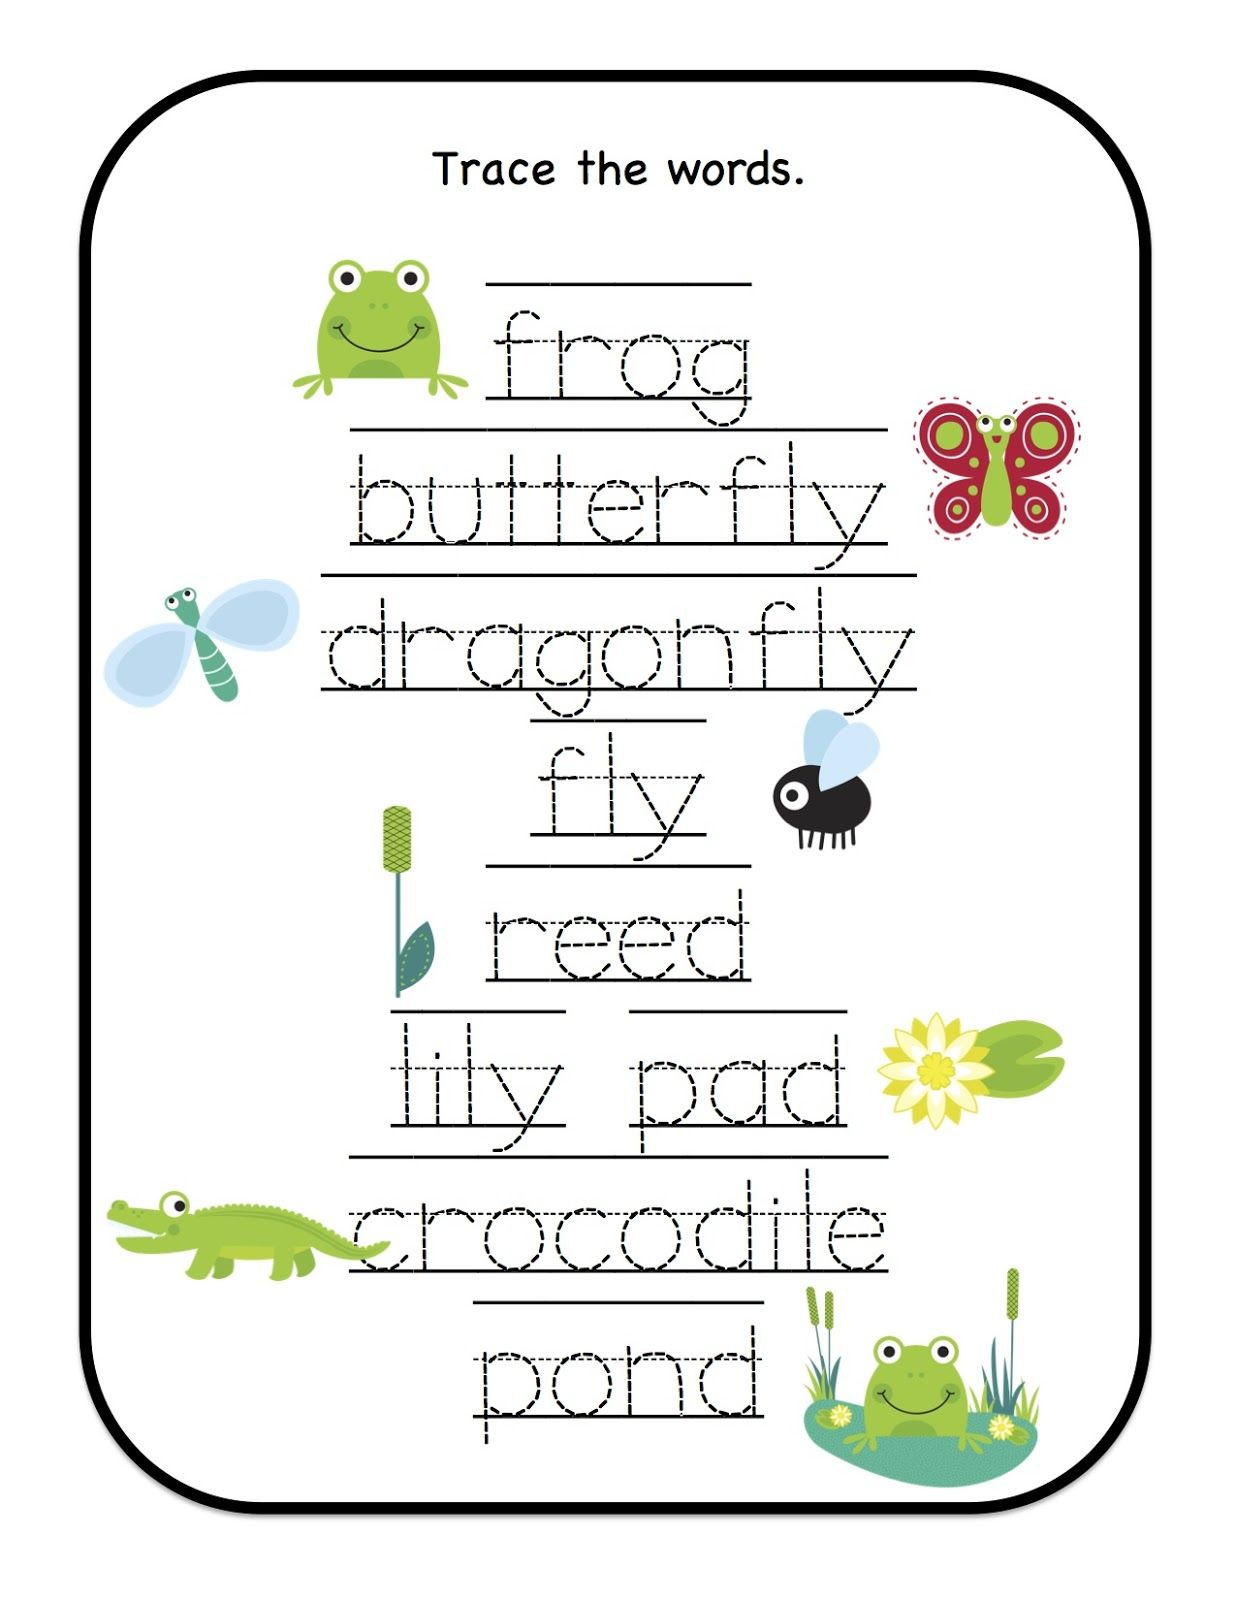 Preschool printables down by the pond printablemany trace the preschool printables down by the pond printablemany trace the words worksheets on different topics robcynllc Images